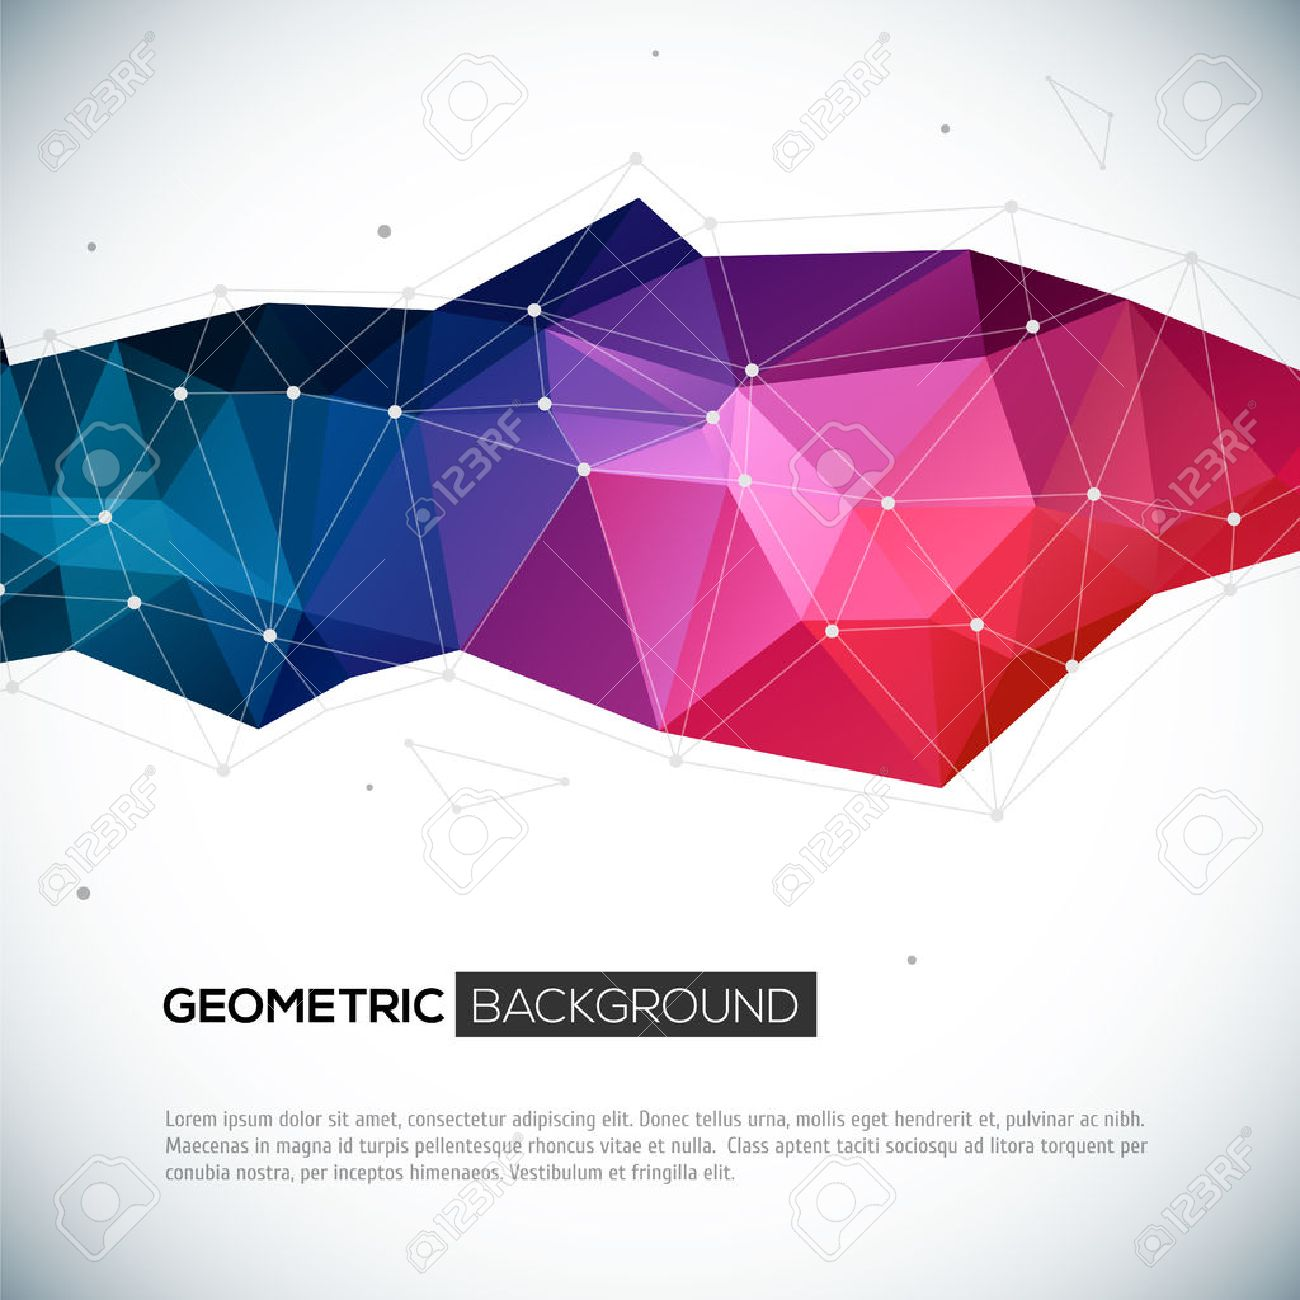 Pics photos 3d colorful abstract background design - Abstract 3d Geometric Colorful Background Vector Illustration For Your Design Stock Vector 25236899